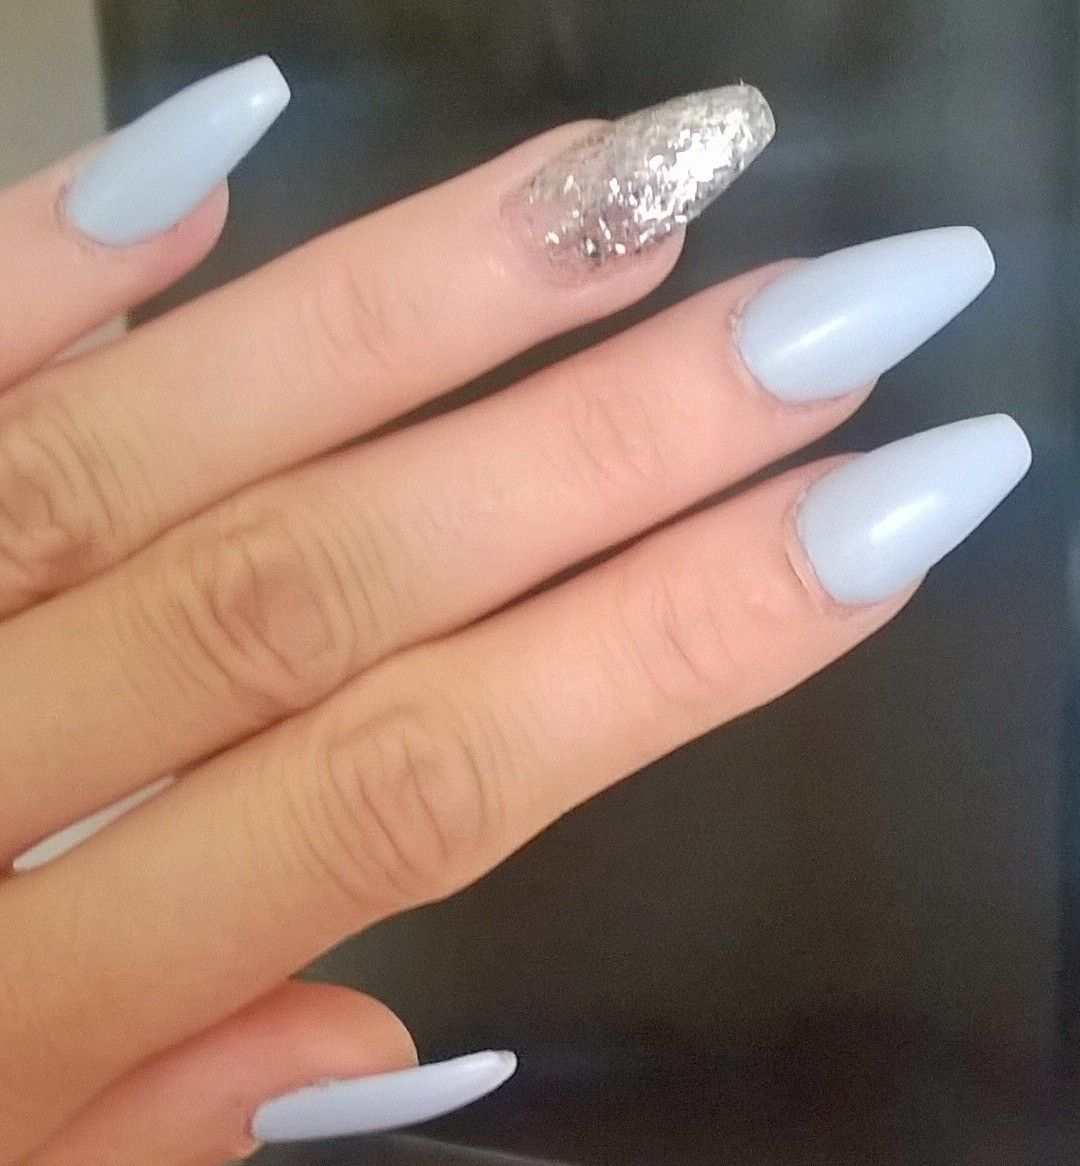 Baby Blue Matt Finish Coffin Shape With Glittery Silver Ring Finger Everyday Nails Blue Nails Prom Nails Silver Trendy Nails